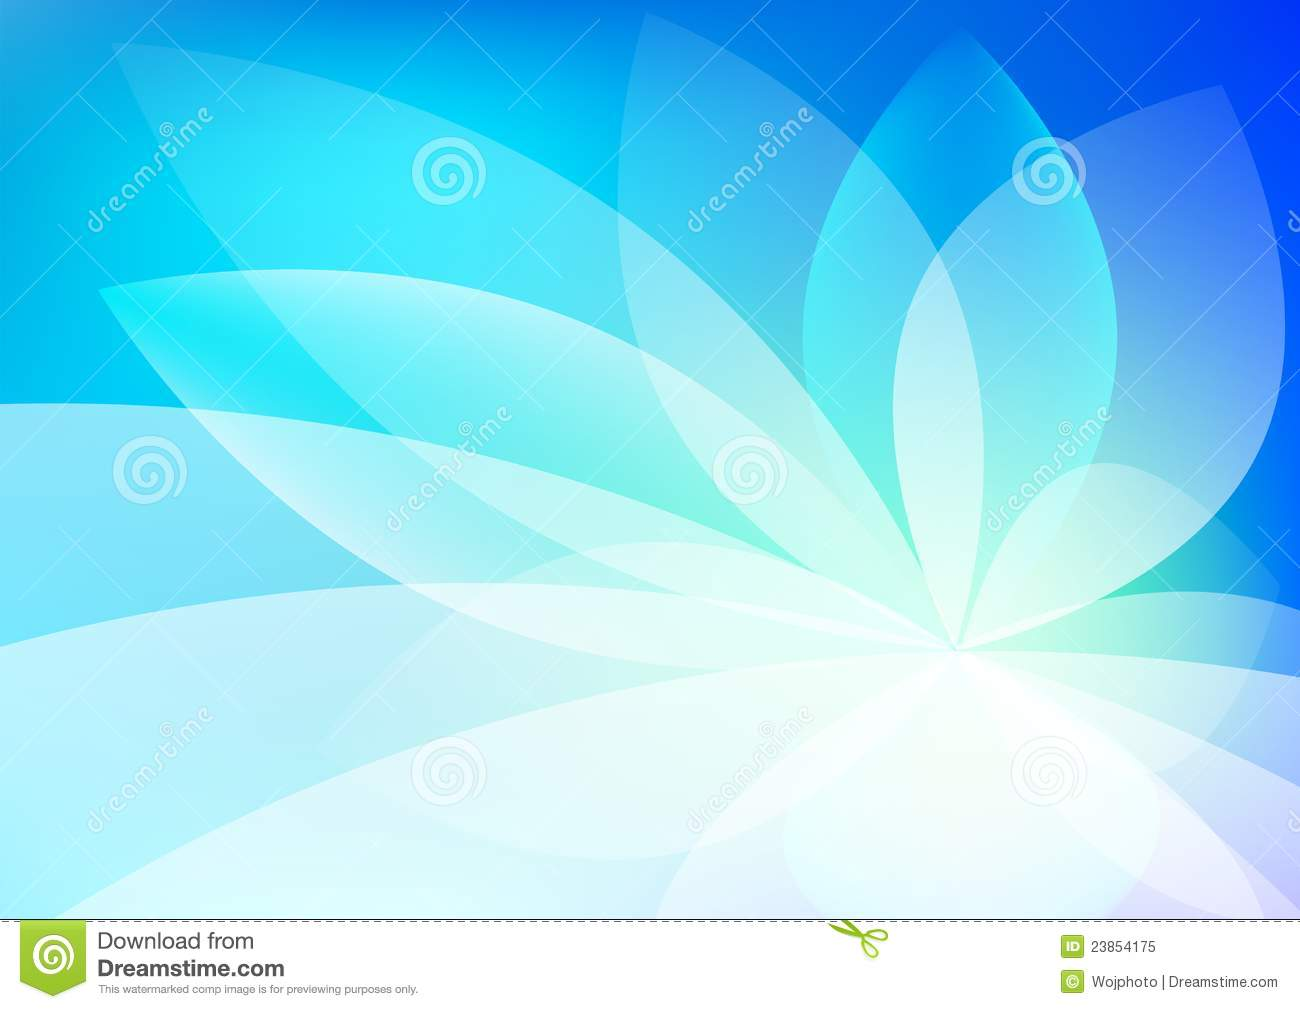 Royalty-Free Stock Photo. Abstract Blue Background Wallpaper